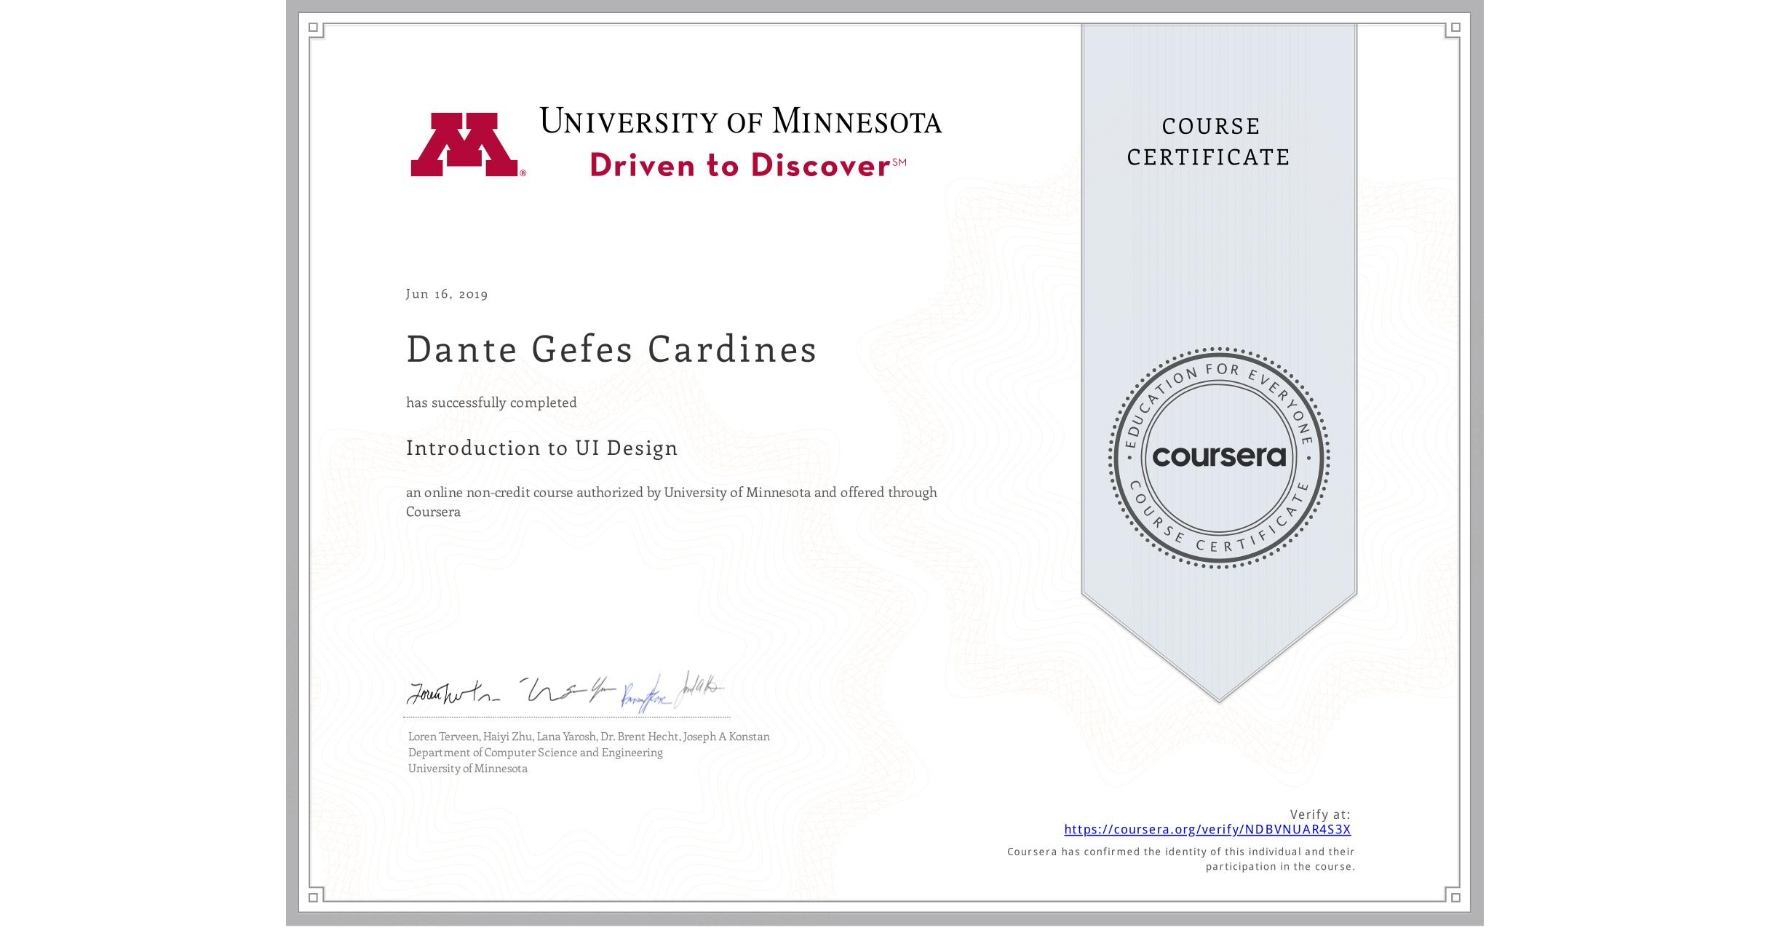 View certificate for Dante Gefes Cardines, Introduction to UI Design, an online non-credit course authorized by University of Minnesota and offered through Coursera